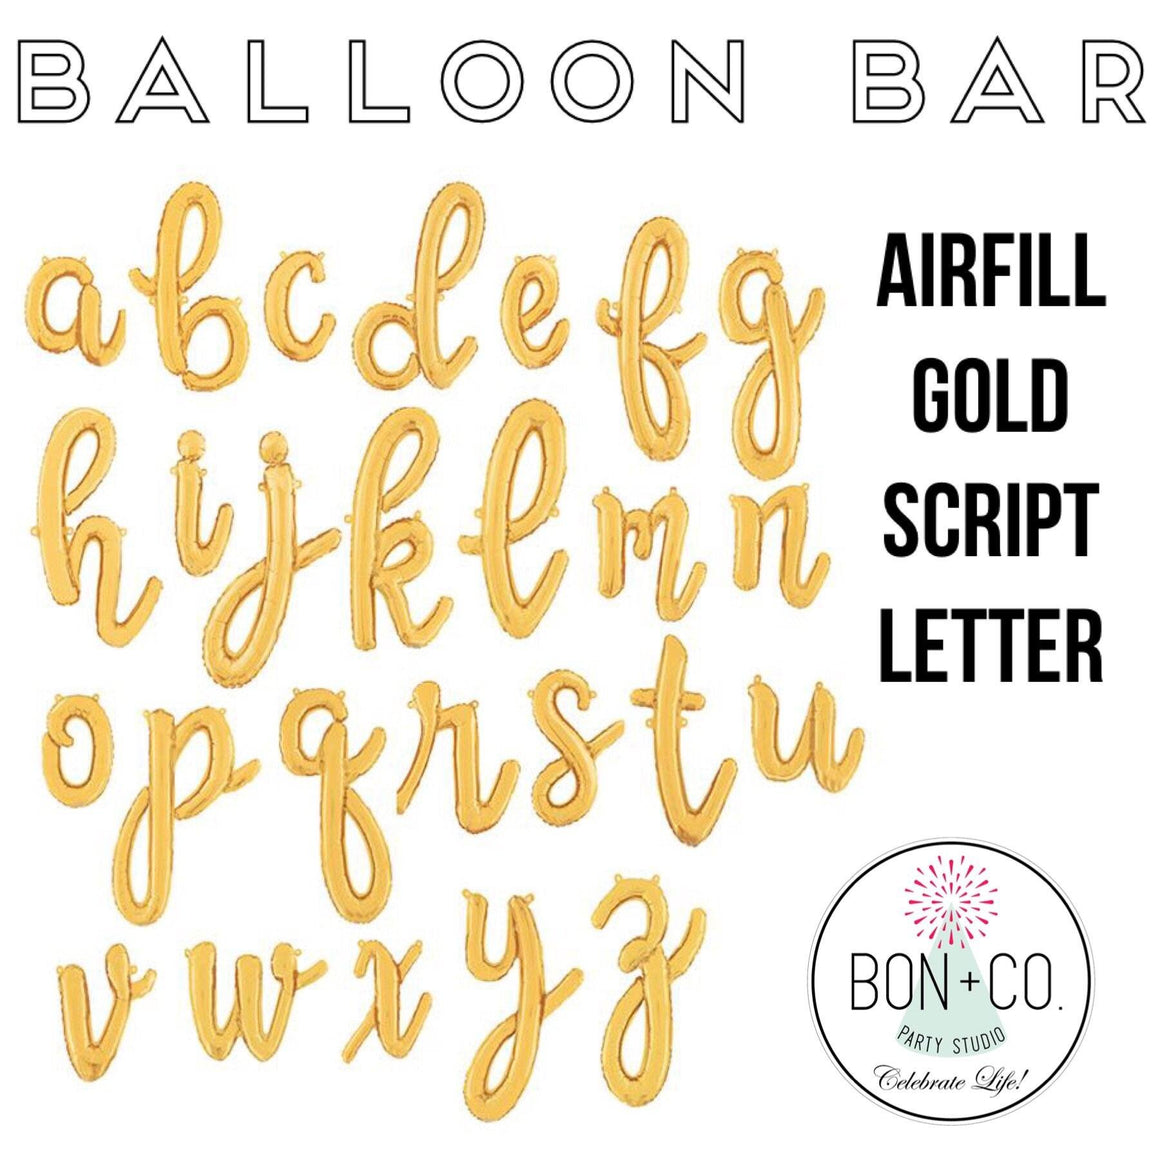 "BALLOON BAR - 14"" AIRFILL GOLD SCRIPT LETTERS, Balloons, BETALLIC - Bon + Co. Party Studio"